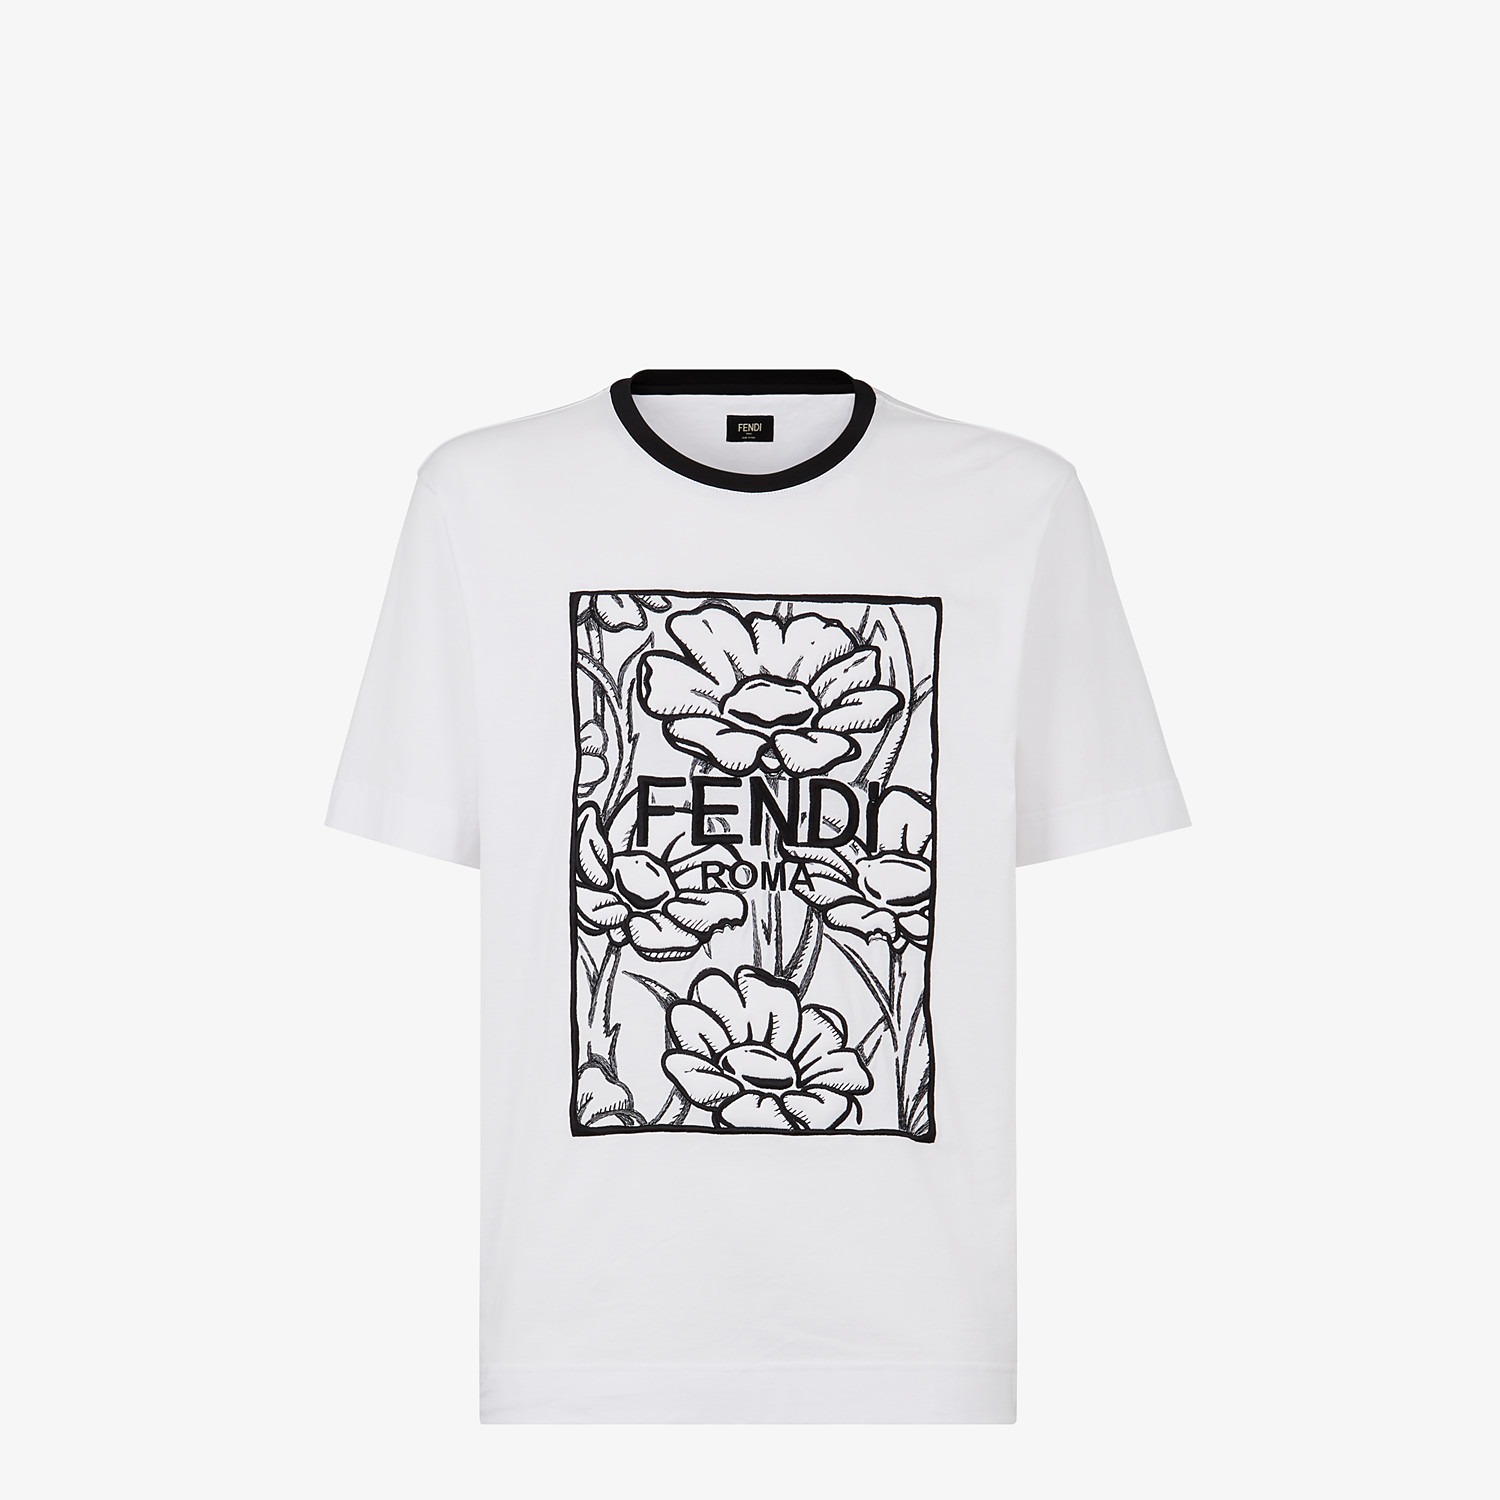 FENDI T-SHIRT - Fendi Roma Joshua Vides cotton T-shirt - view 1 detail